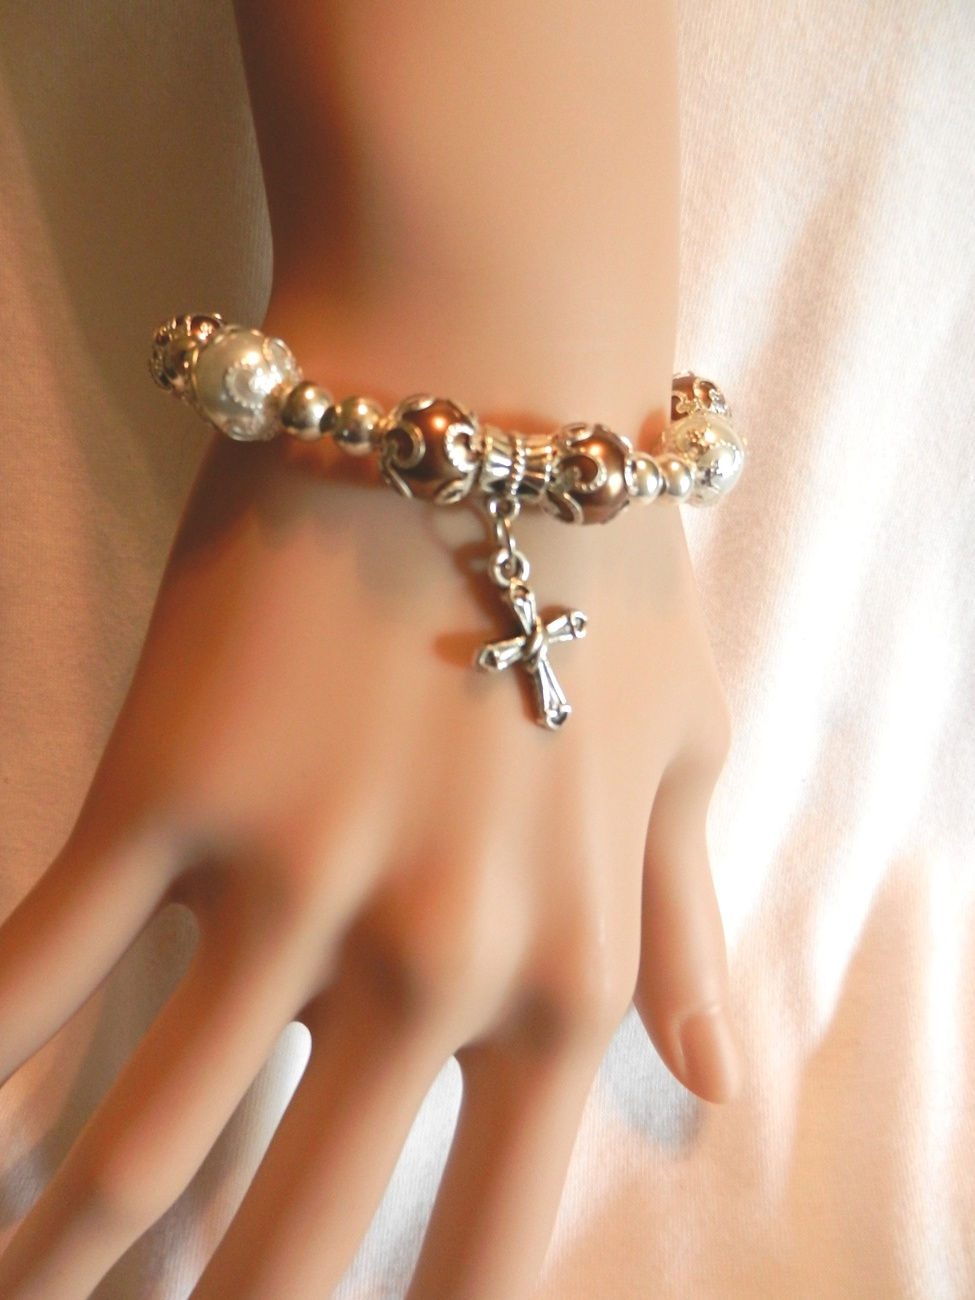 Primary image for New  Cross Jewelry, Crusifix Bracelet, Stretch Bracelet, Christian , Catholic